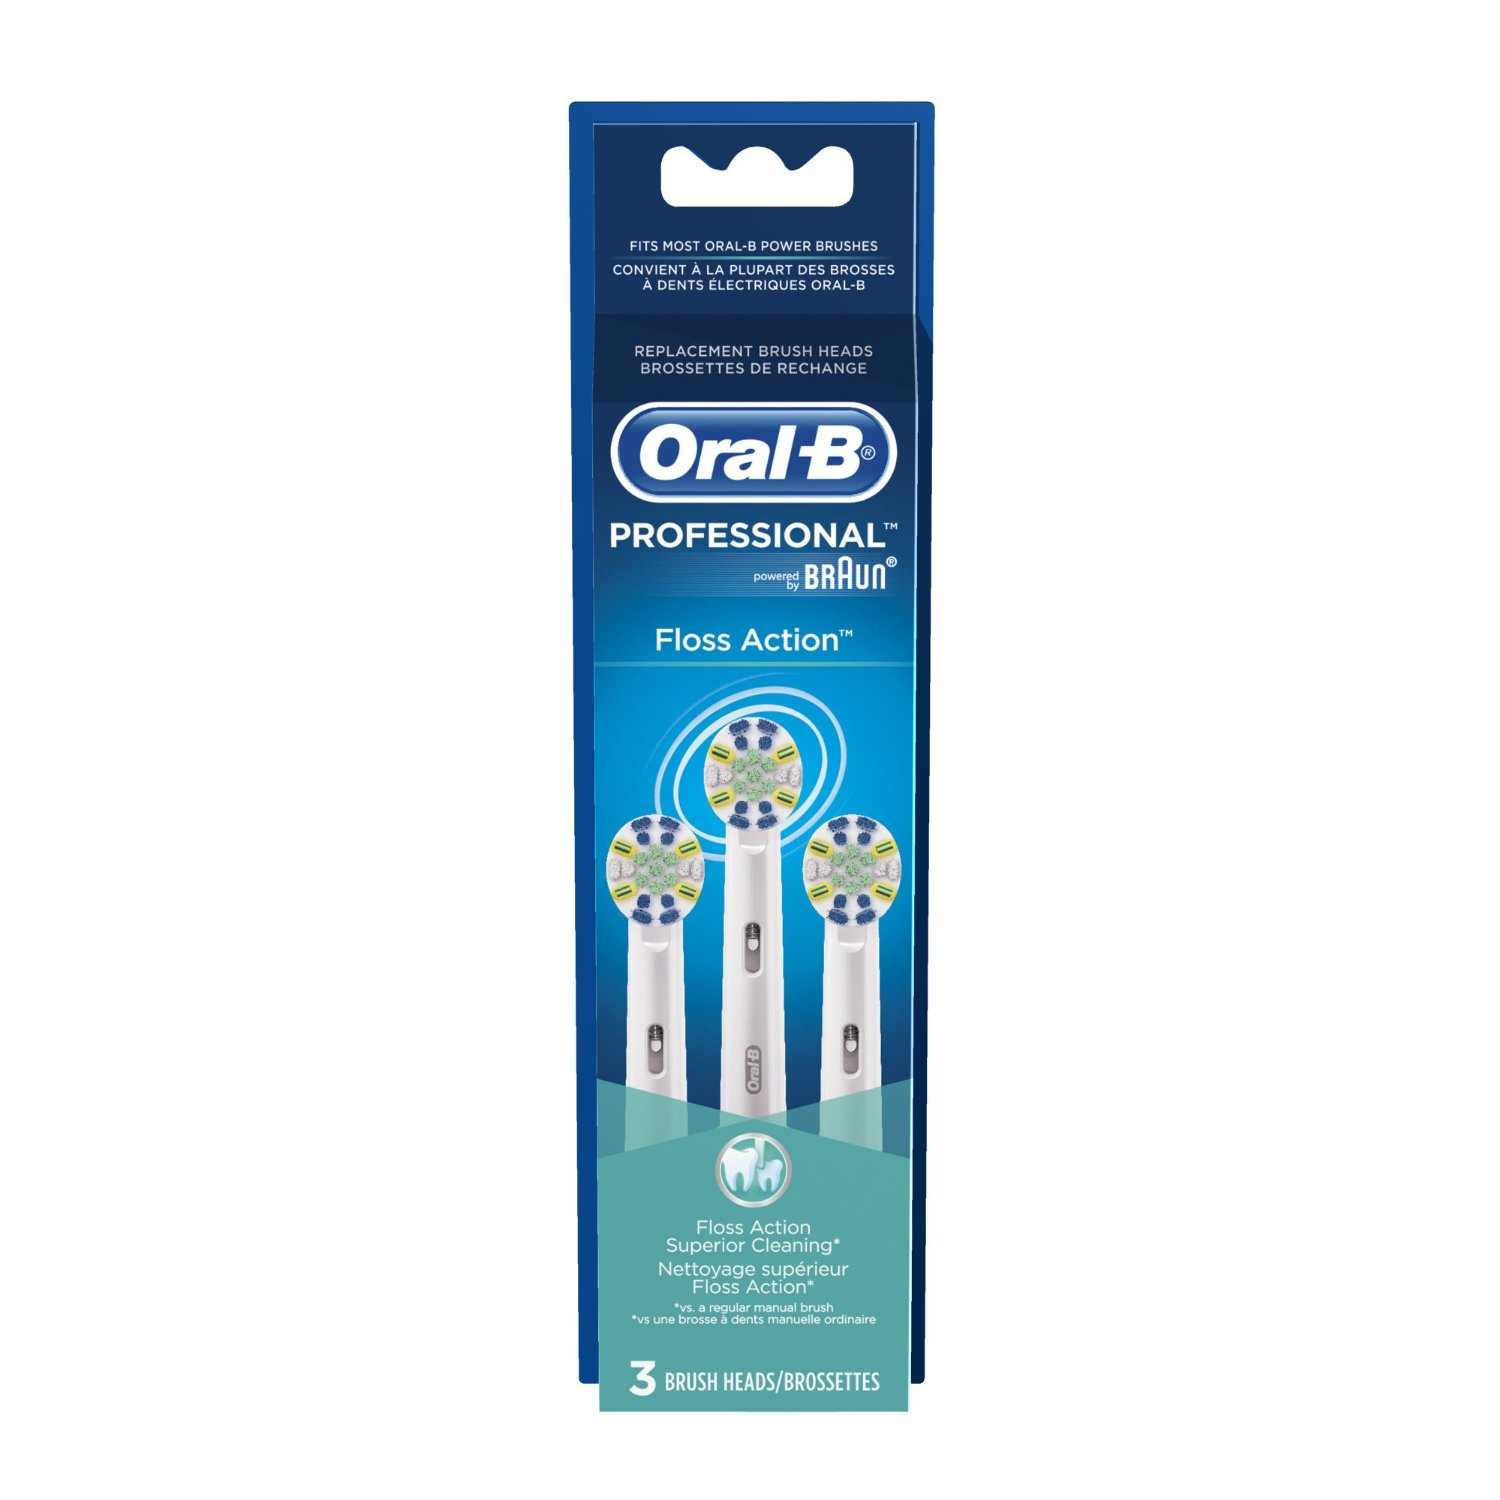 Toothbrush Replacement Coupons Heads